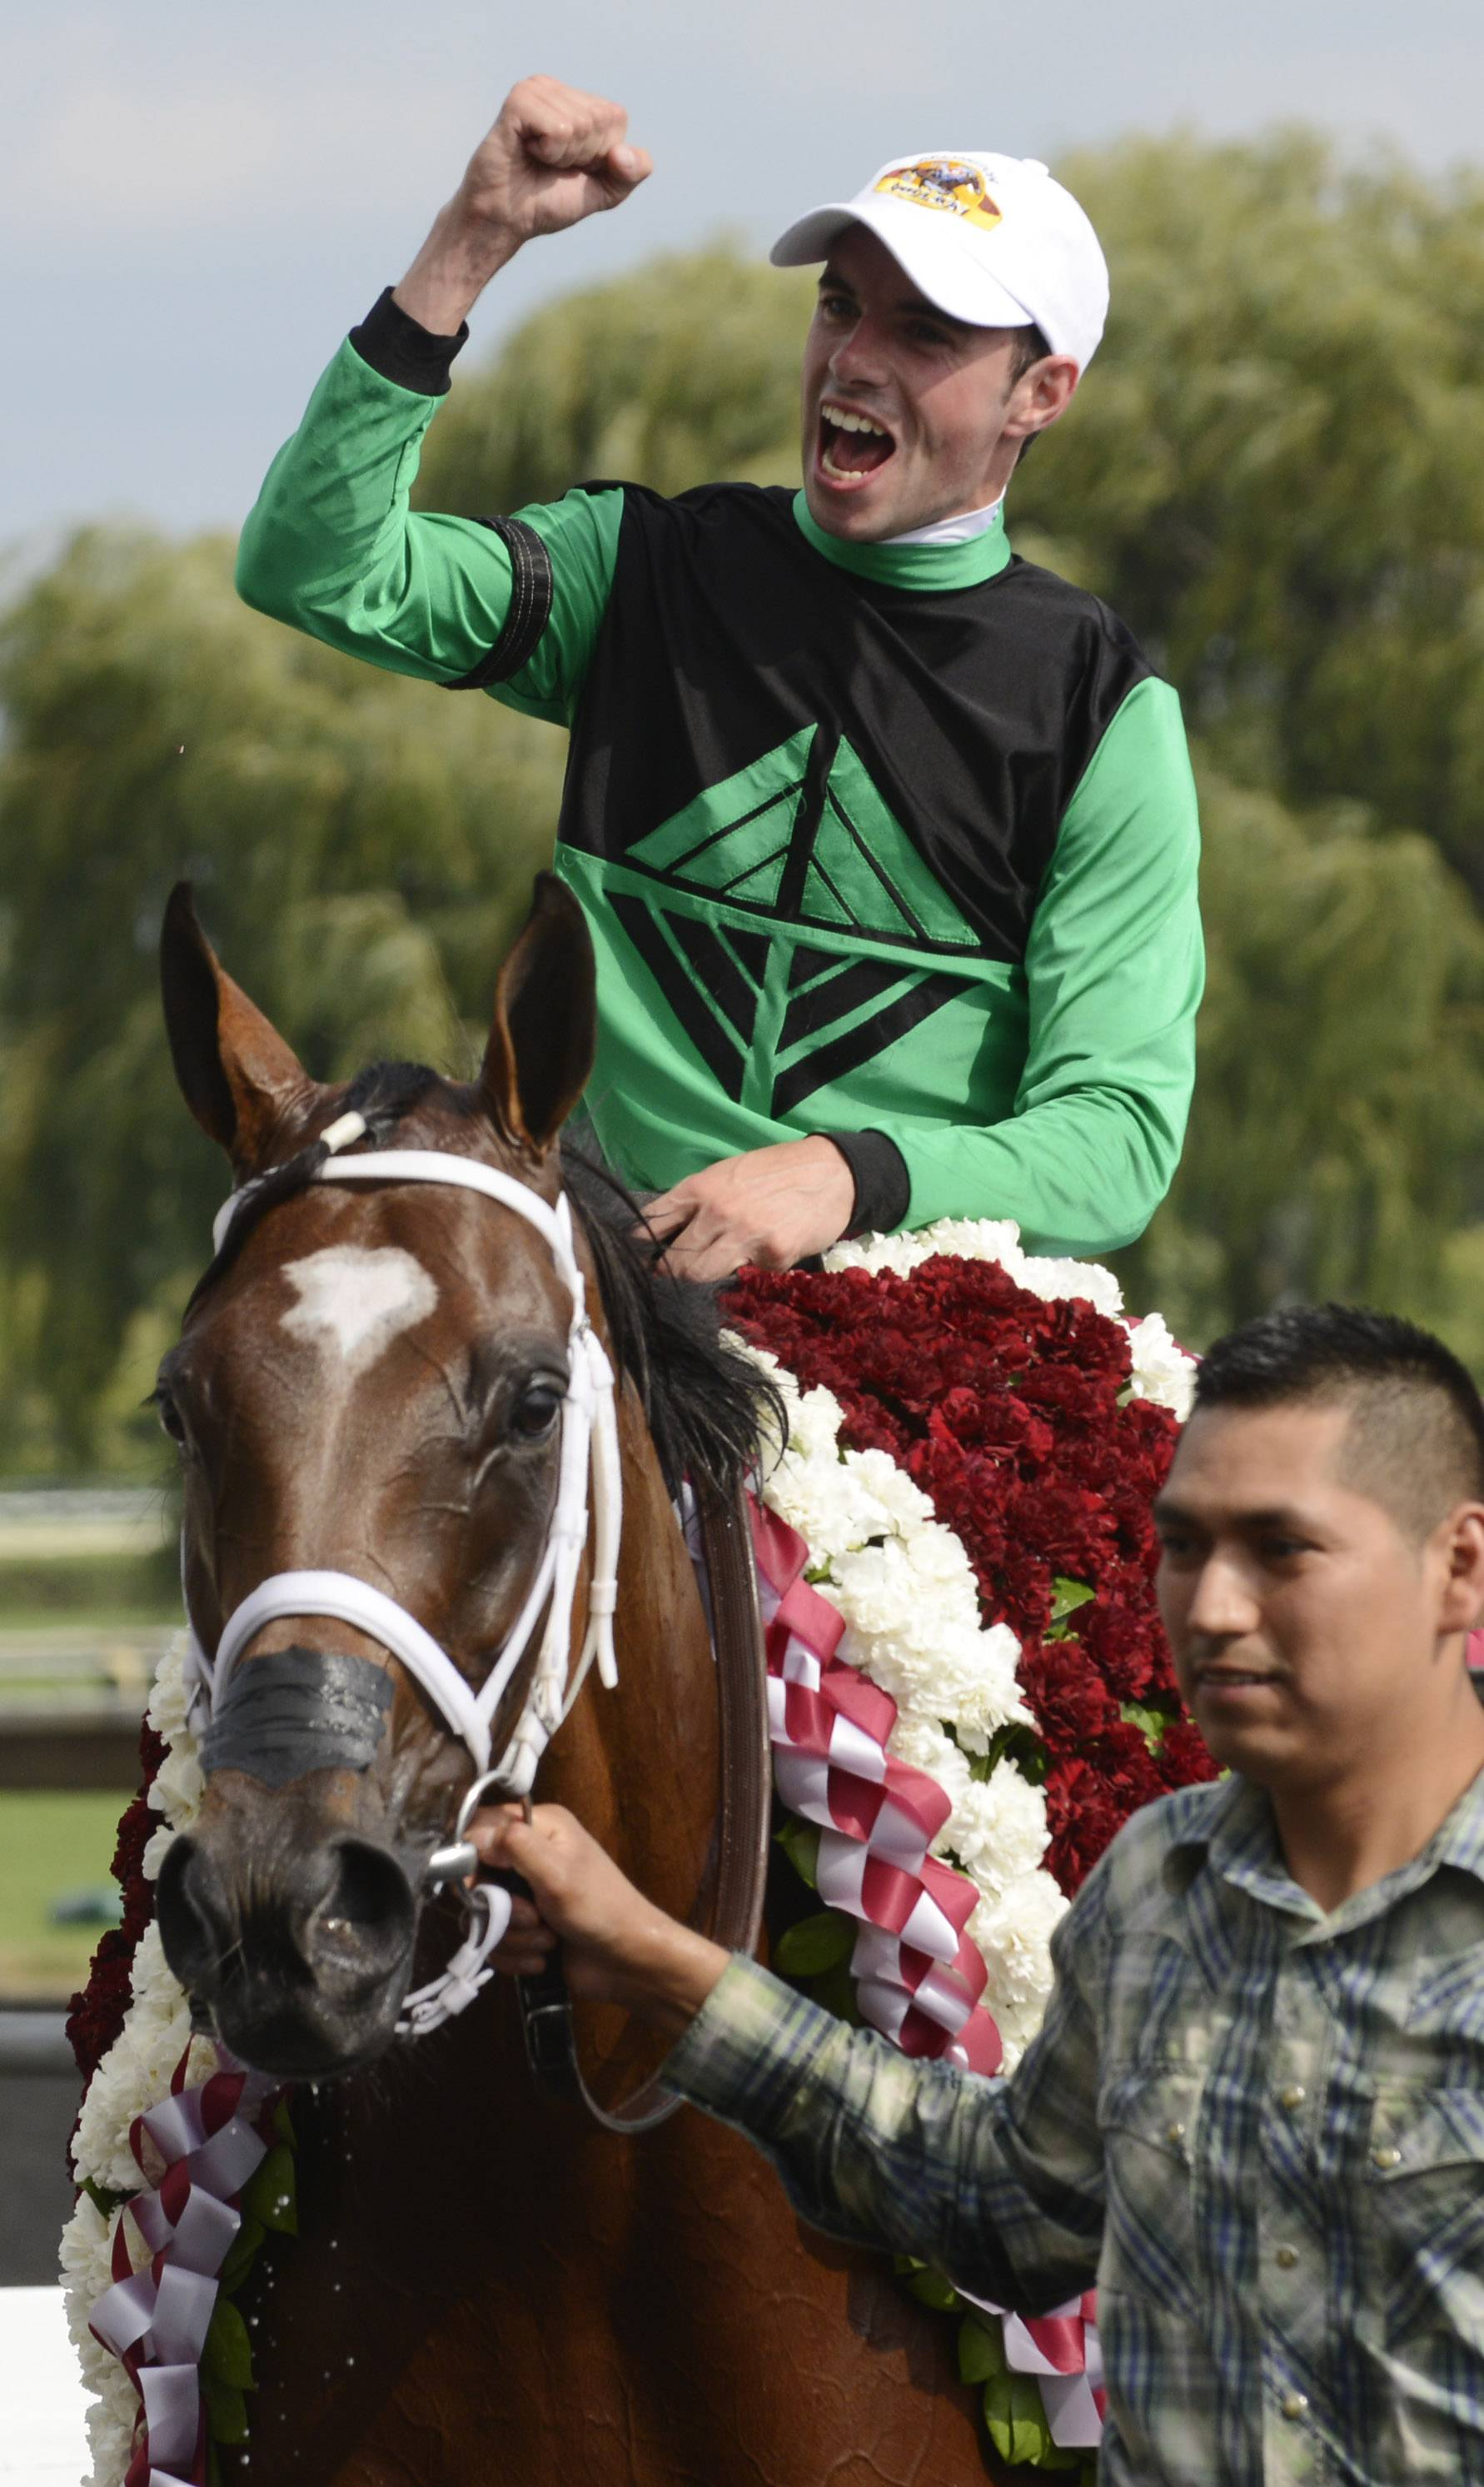 Jockey Florent Geroux celebrates after winning the American St. Leger aboard The Pizza Man during the International Festival of Racing at Arlington International Racecourse in August 2014. The Pizza Man's owners are hoping the horse can become the first Illinois-bred to capture the Million.